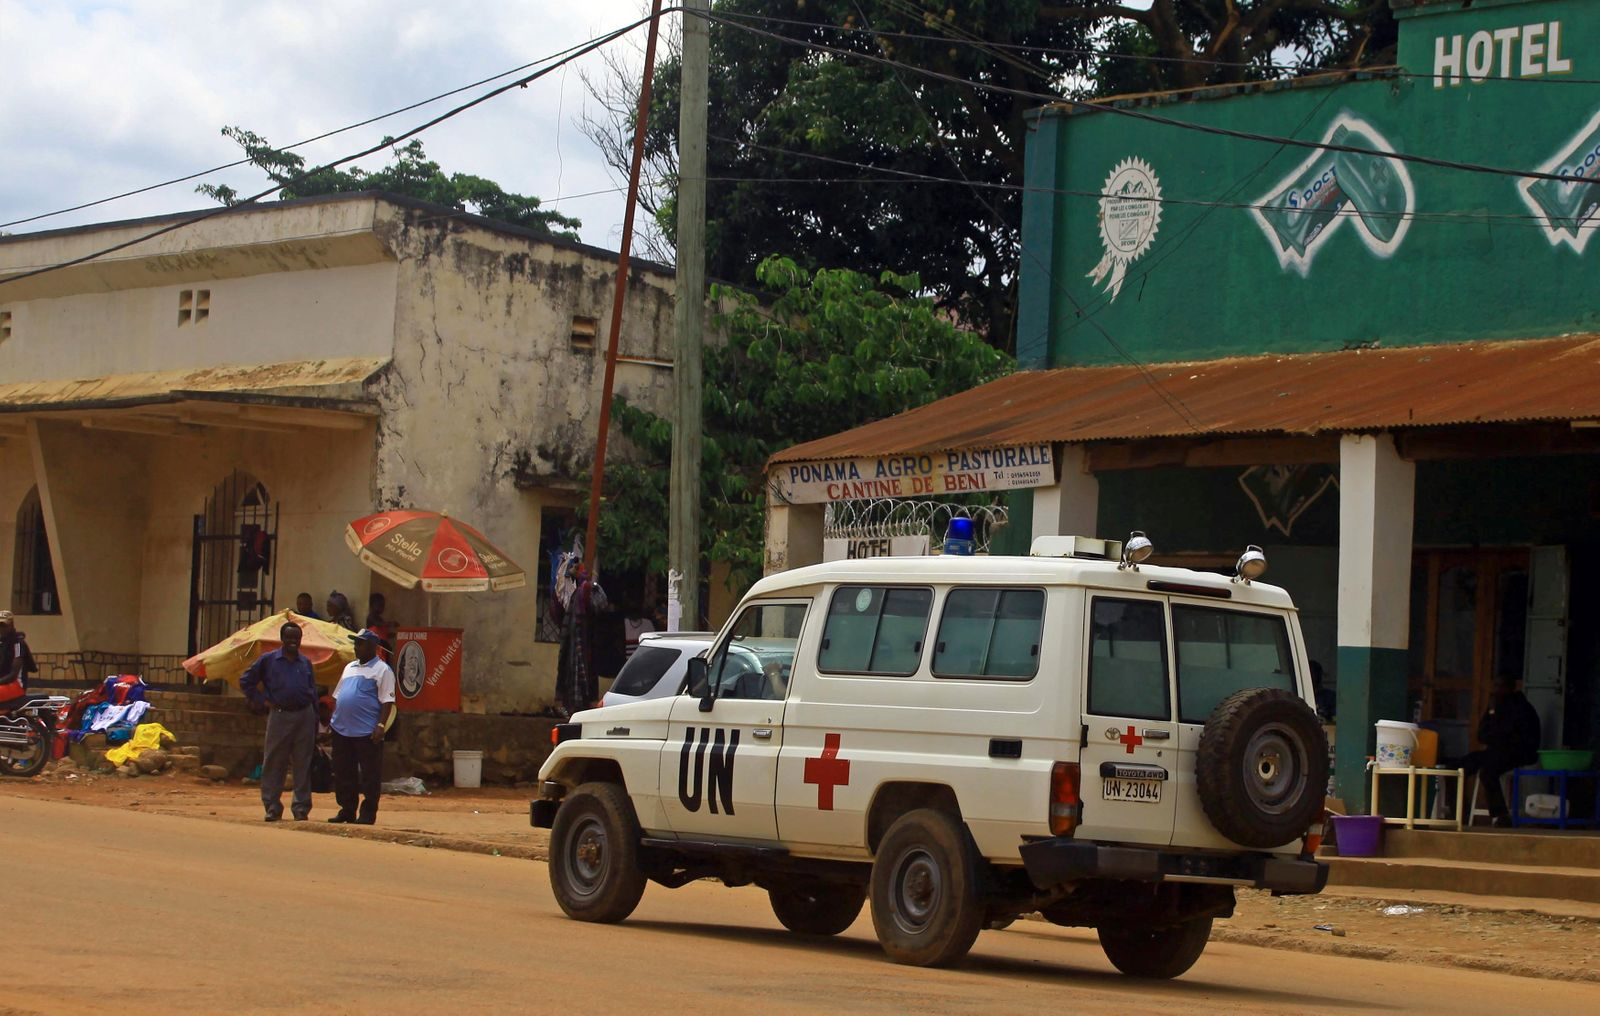 A United Nations ambulance drives along a street in Beni in North Kivu province